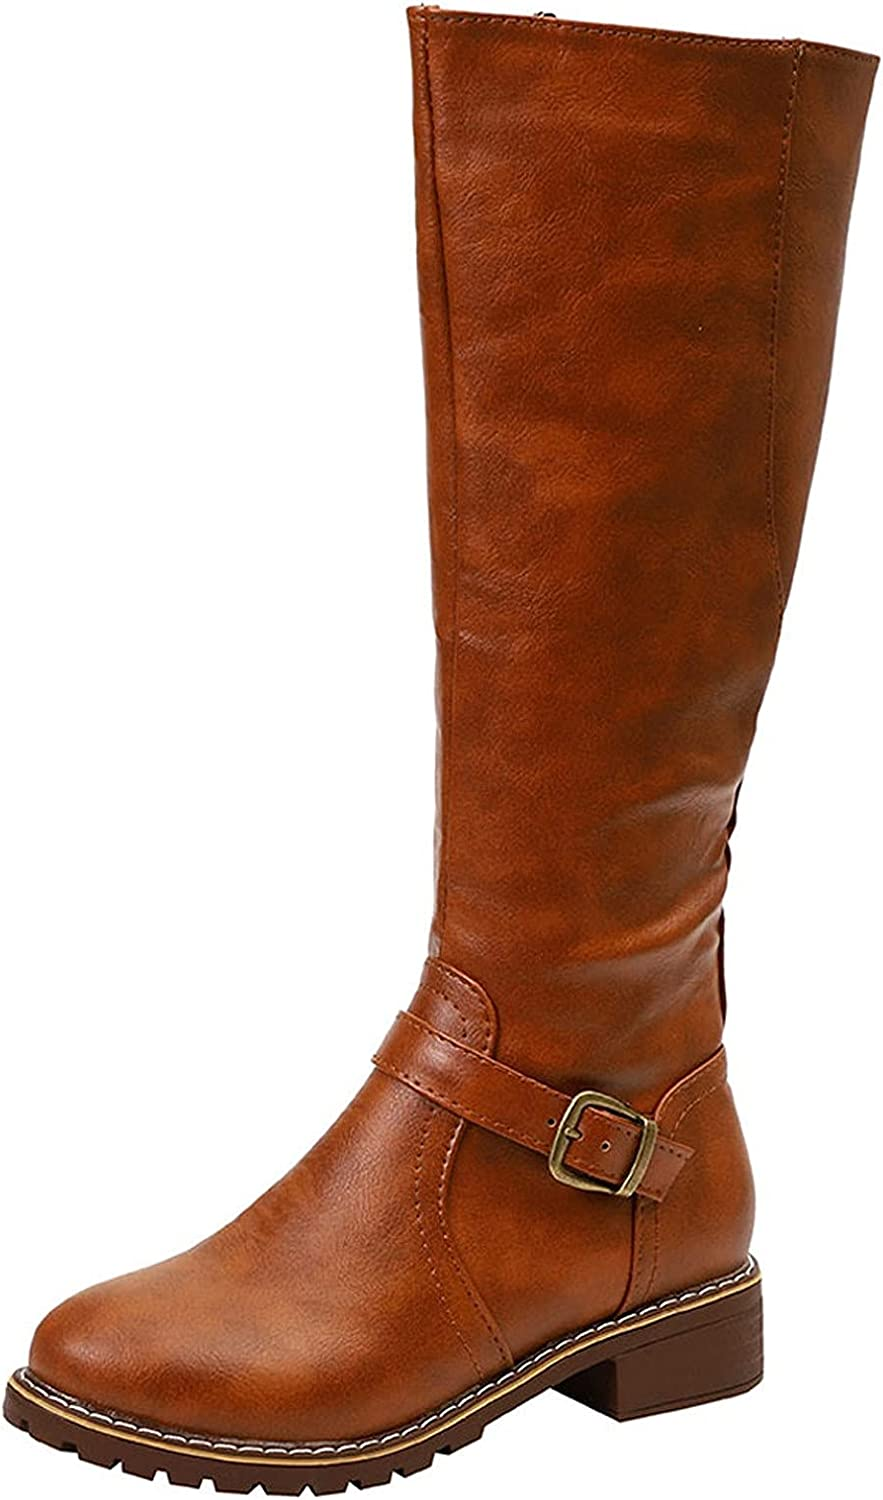 Knee High Boots for Women Low Fashion Fresno Mall Comfortable Vintage Selling rankings W Heel